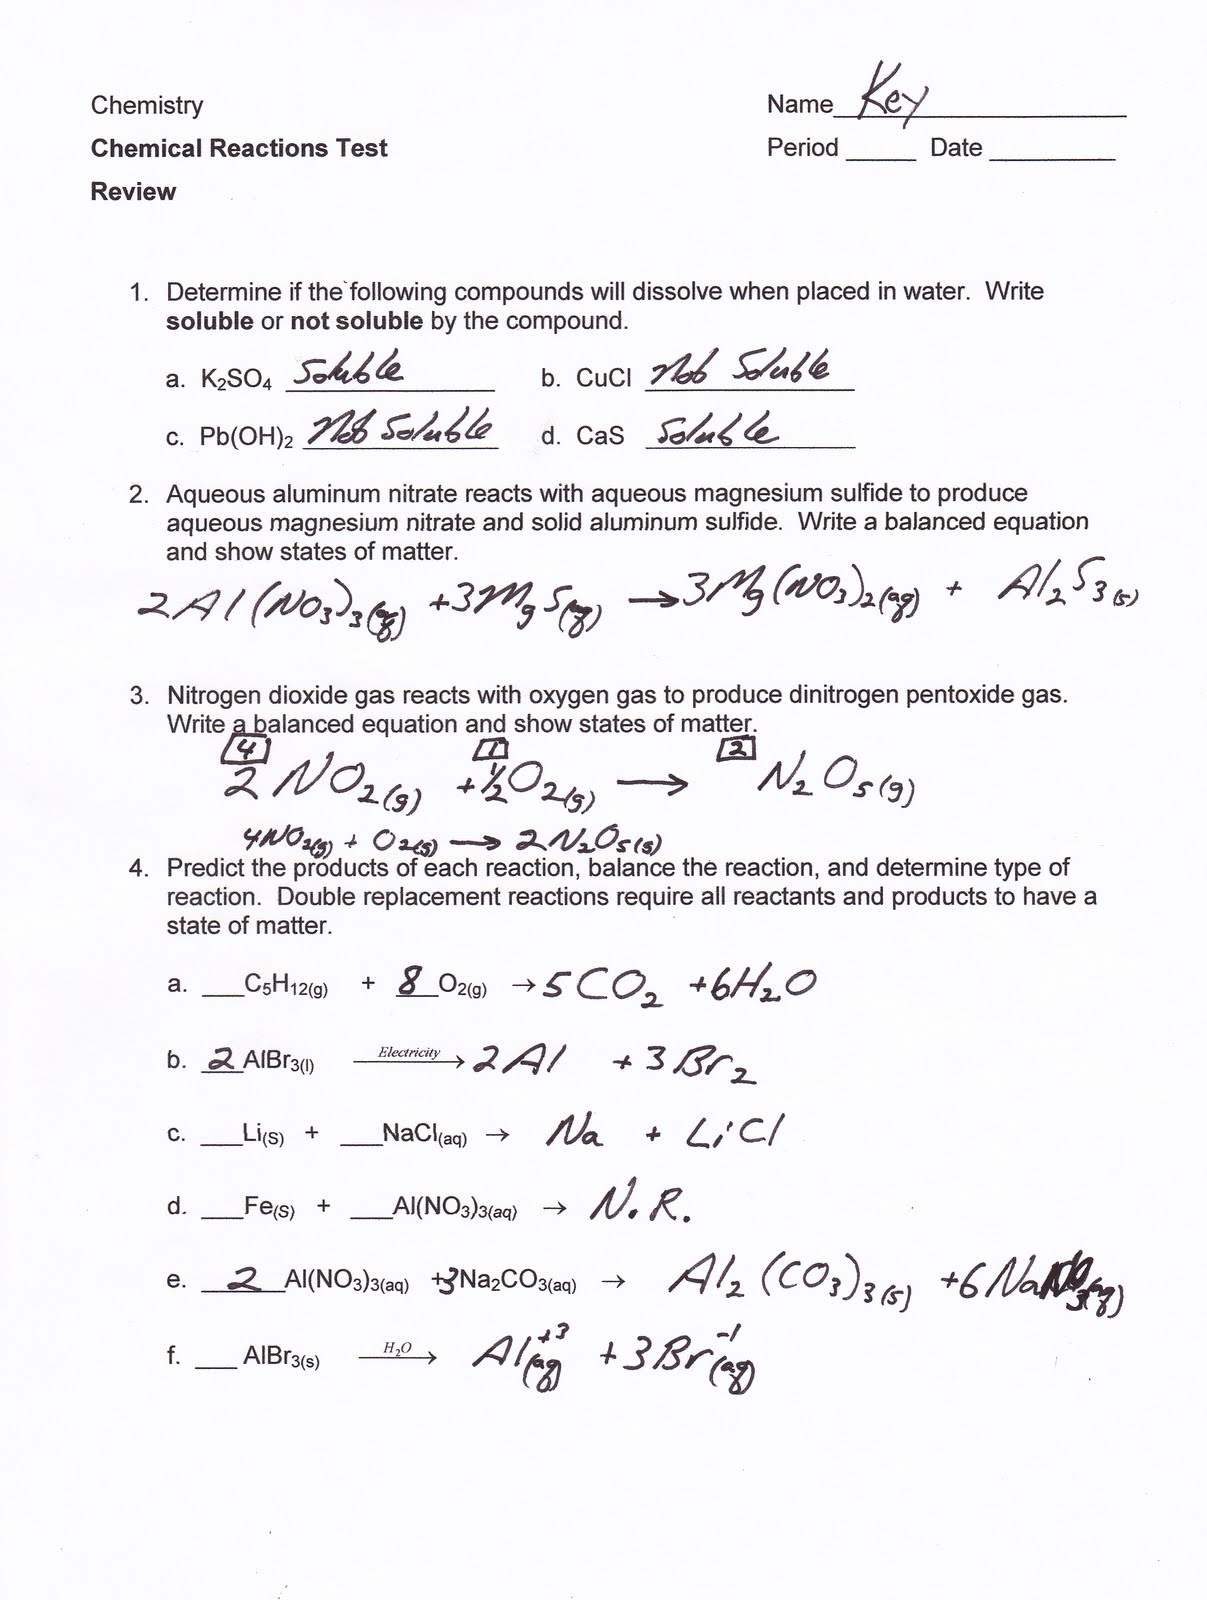 Mr. Brueckner's Chemistry Class - HHS - 2011-12: February 2012